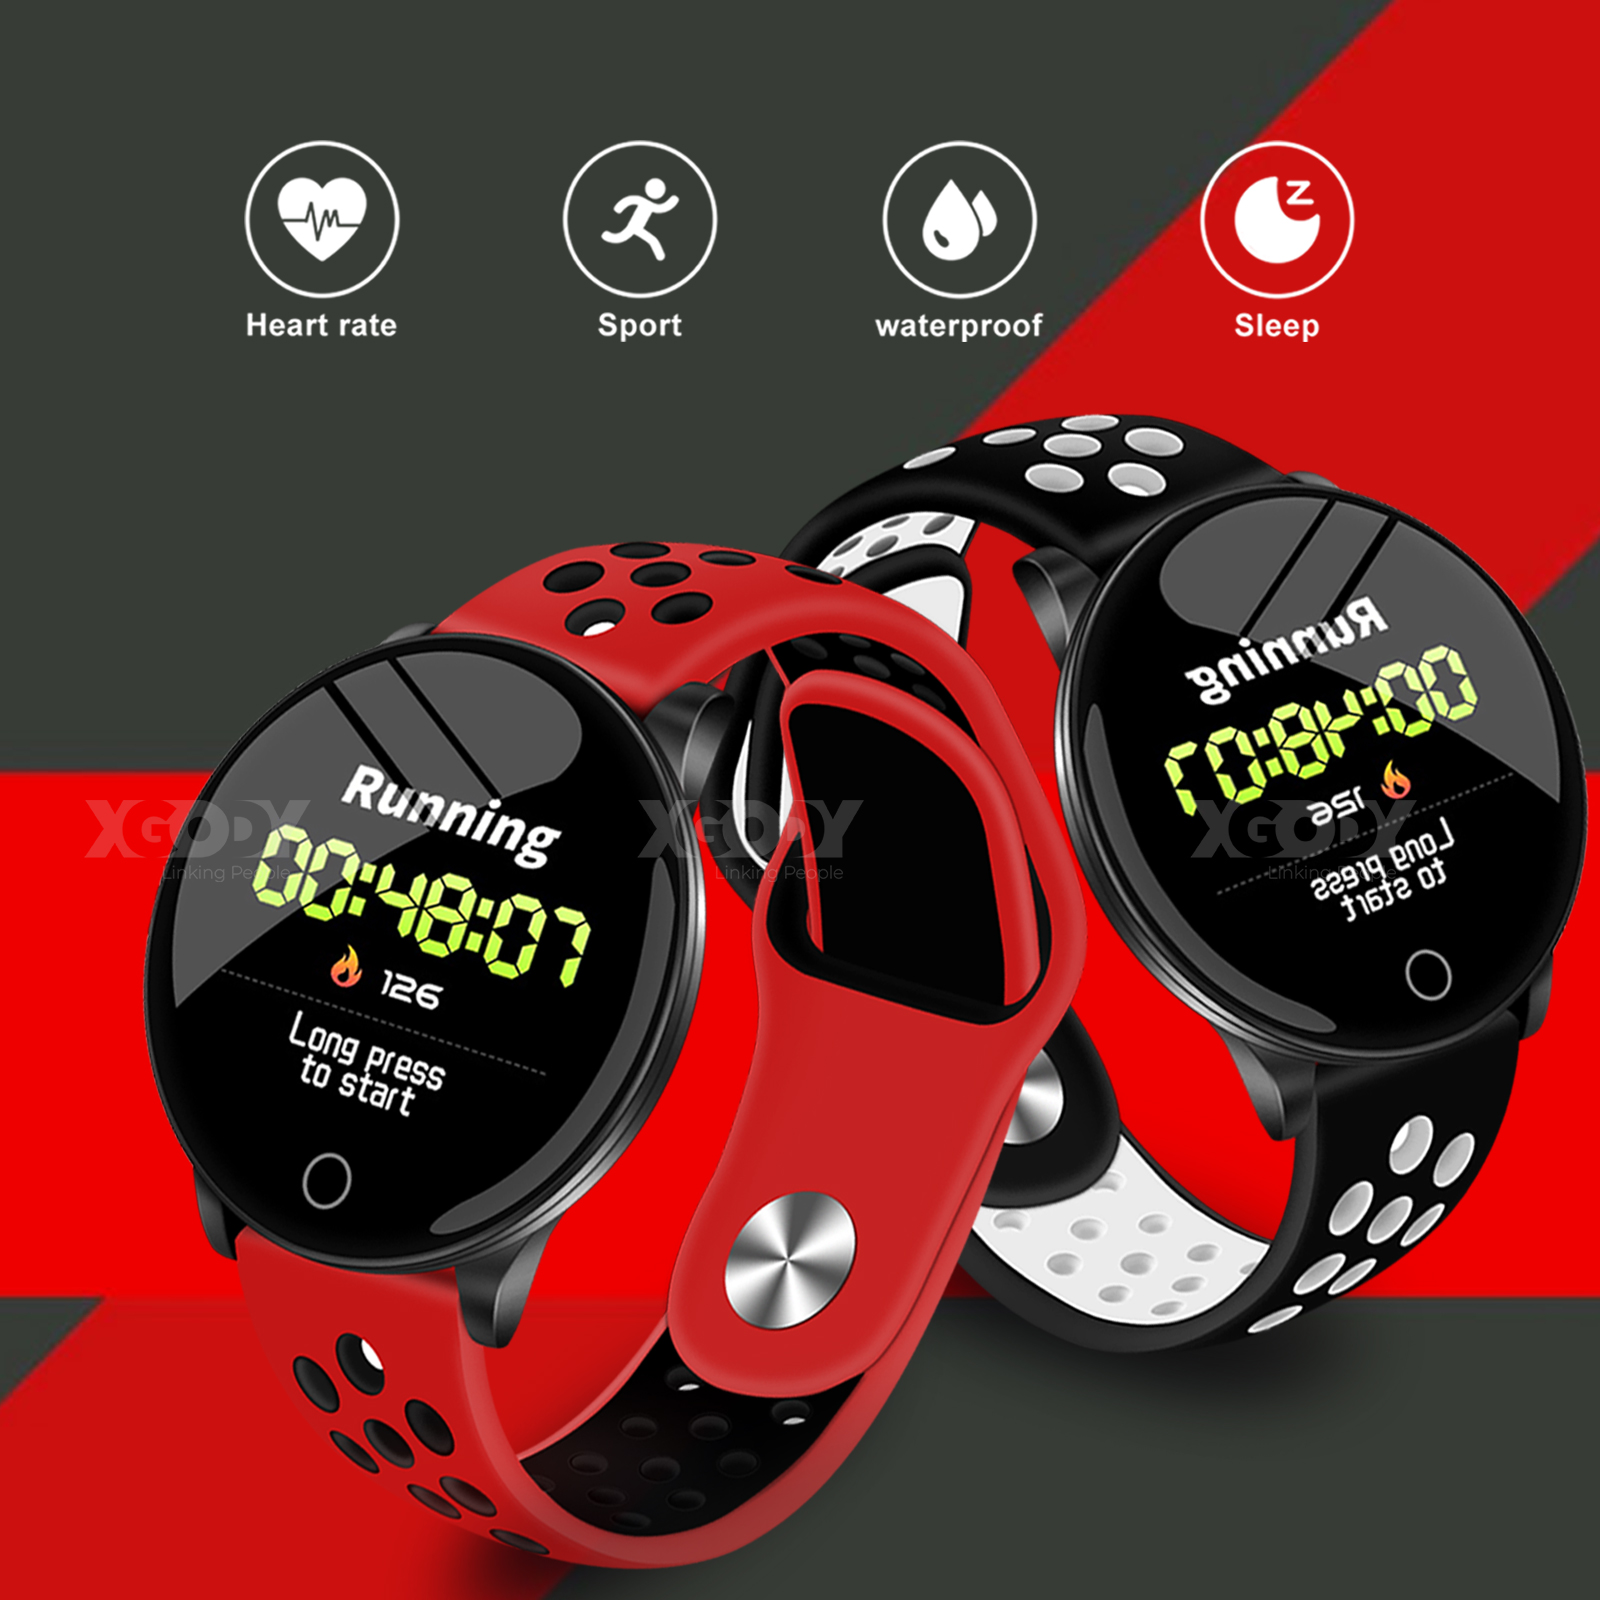 XGODY Waterproof IP67 Smart Watch Sleep Monitor Tracker Pedo